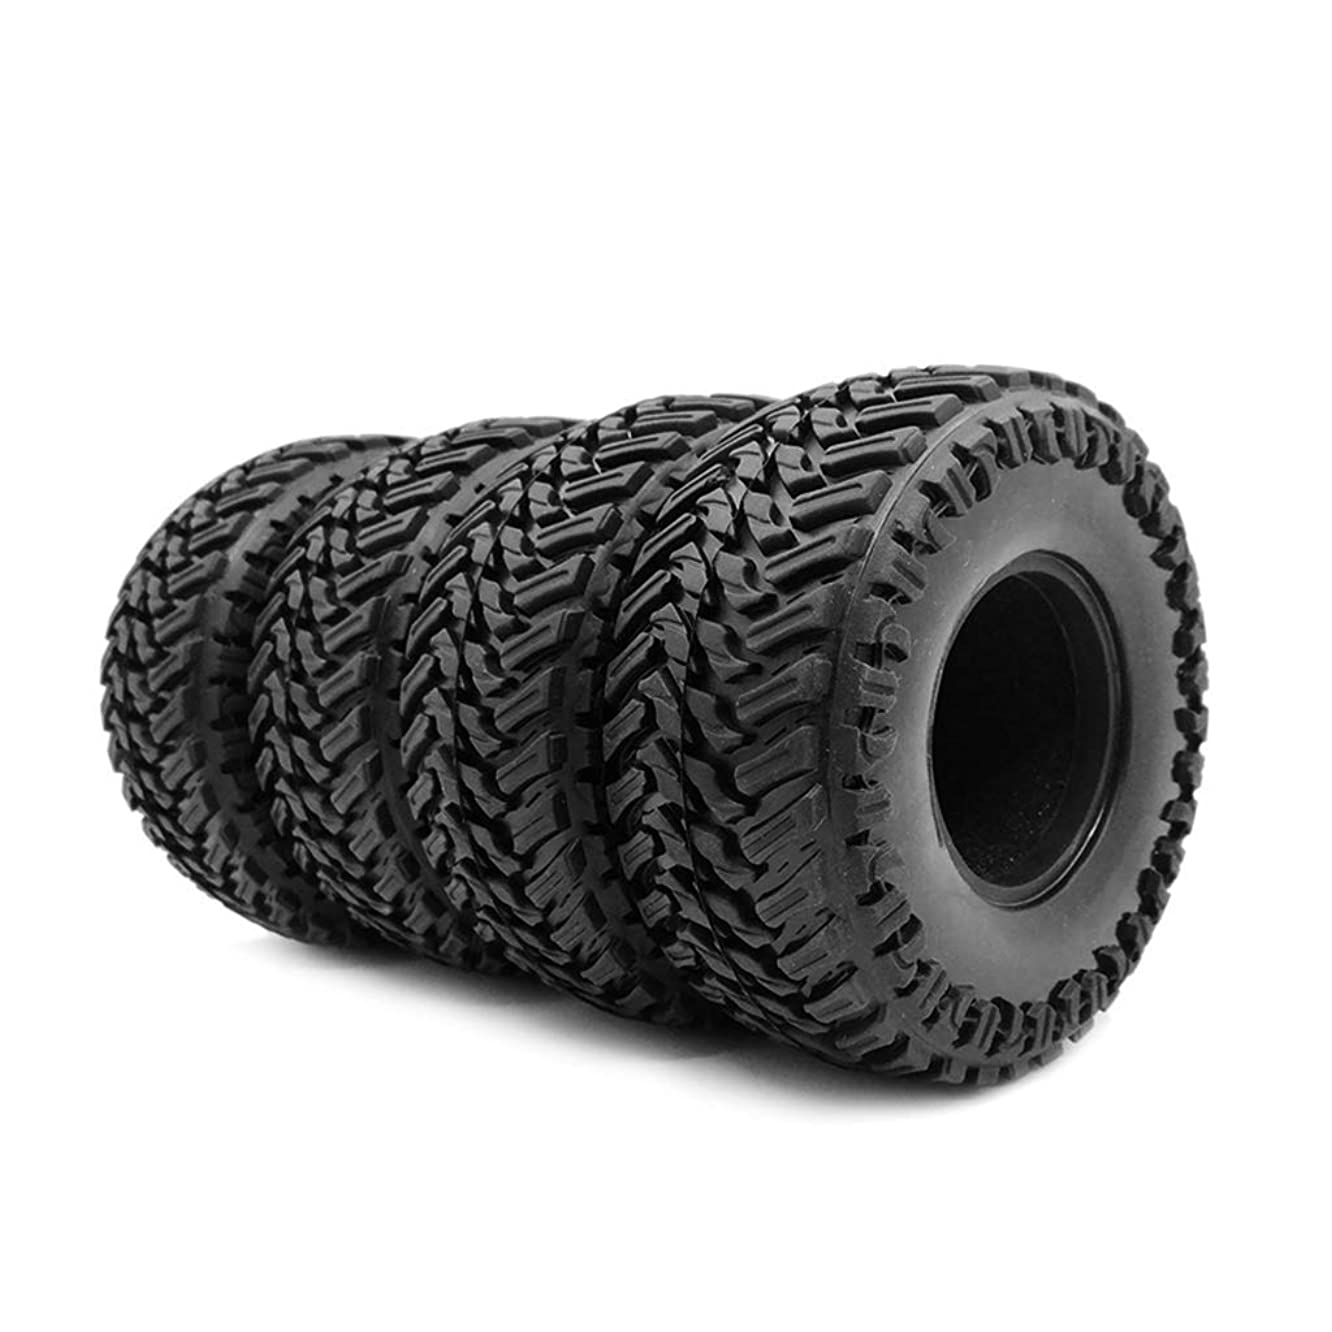 GMSP 4PCS 107mm 1.9inch Rubber Rocks Tyres Wheel Tires for 1:10 RC Rock Crawler Axial SCX10 90047 D90 D110 TF2 Traxxas TRX-4 S273